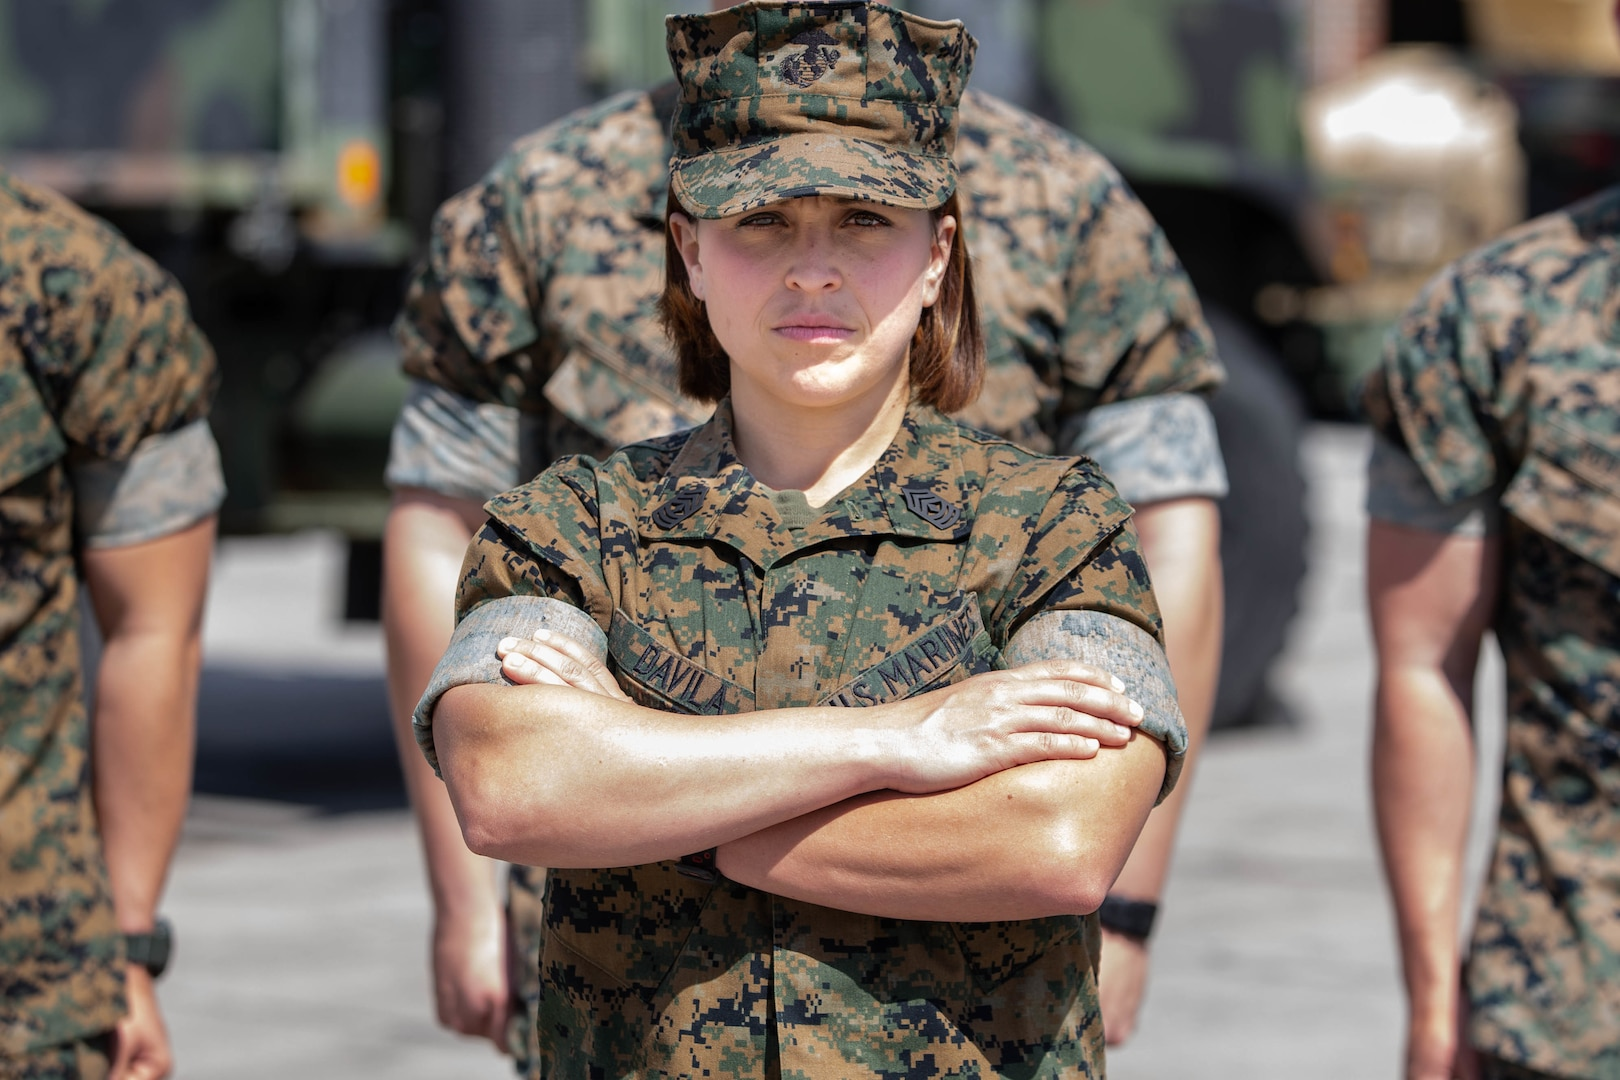 U.S. Marine Corps 1st Sgt. Jessica S. Davila, with Headquarters and Service Company, Combat Logistics Battalion 2, Combat Logistics Regiment 2 poses for a photo on Camp Lejeune, North Carolina, March, 18, 2020. 2nd MLG is honoring the many women who play an essential part to the success of the mission during March for Women's History Month. (U.S. Marine Corps photo by Lance Cpl. Scott Jenkins)